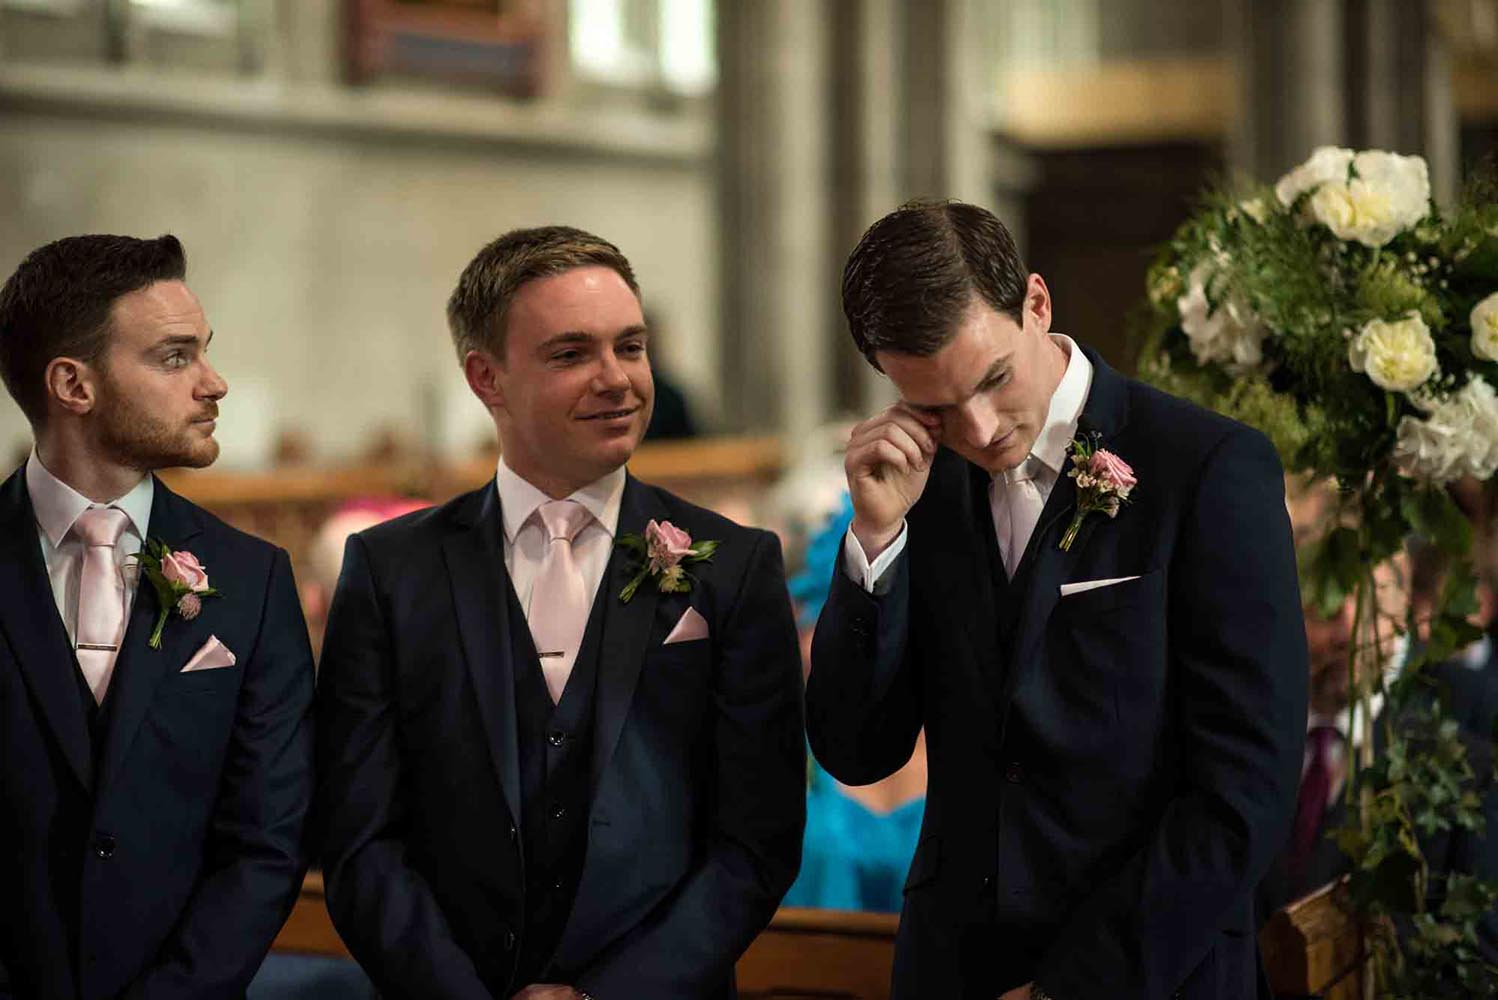 Groom and bestman waiting for bride